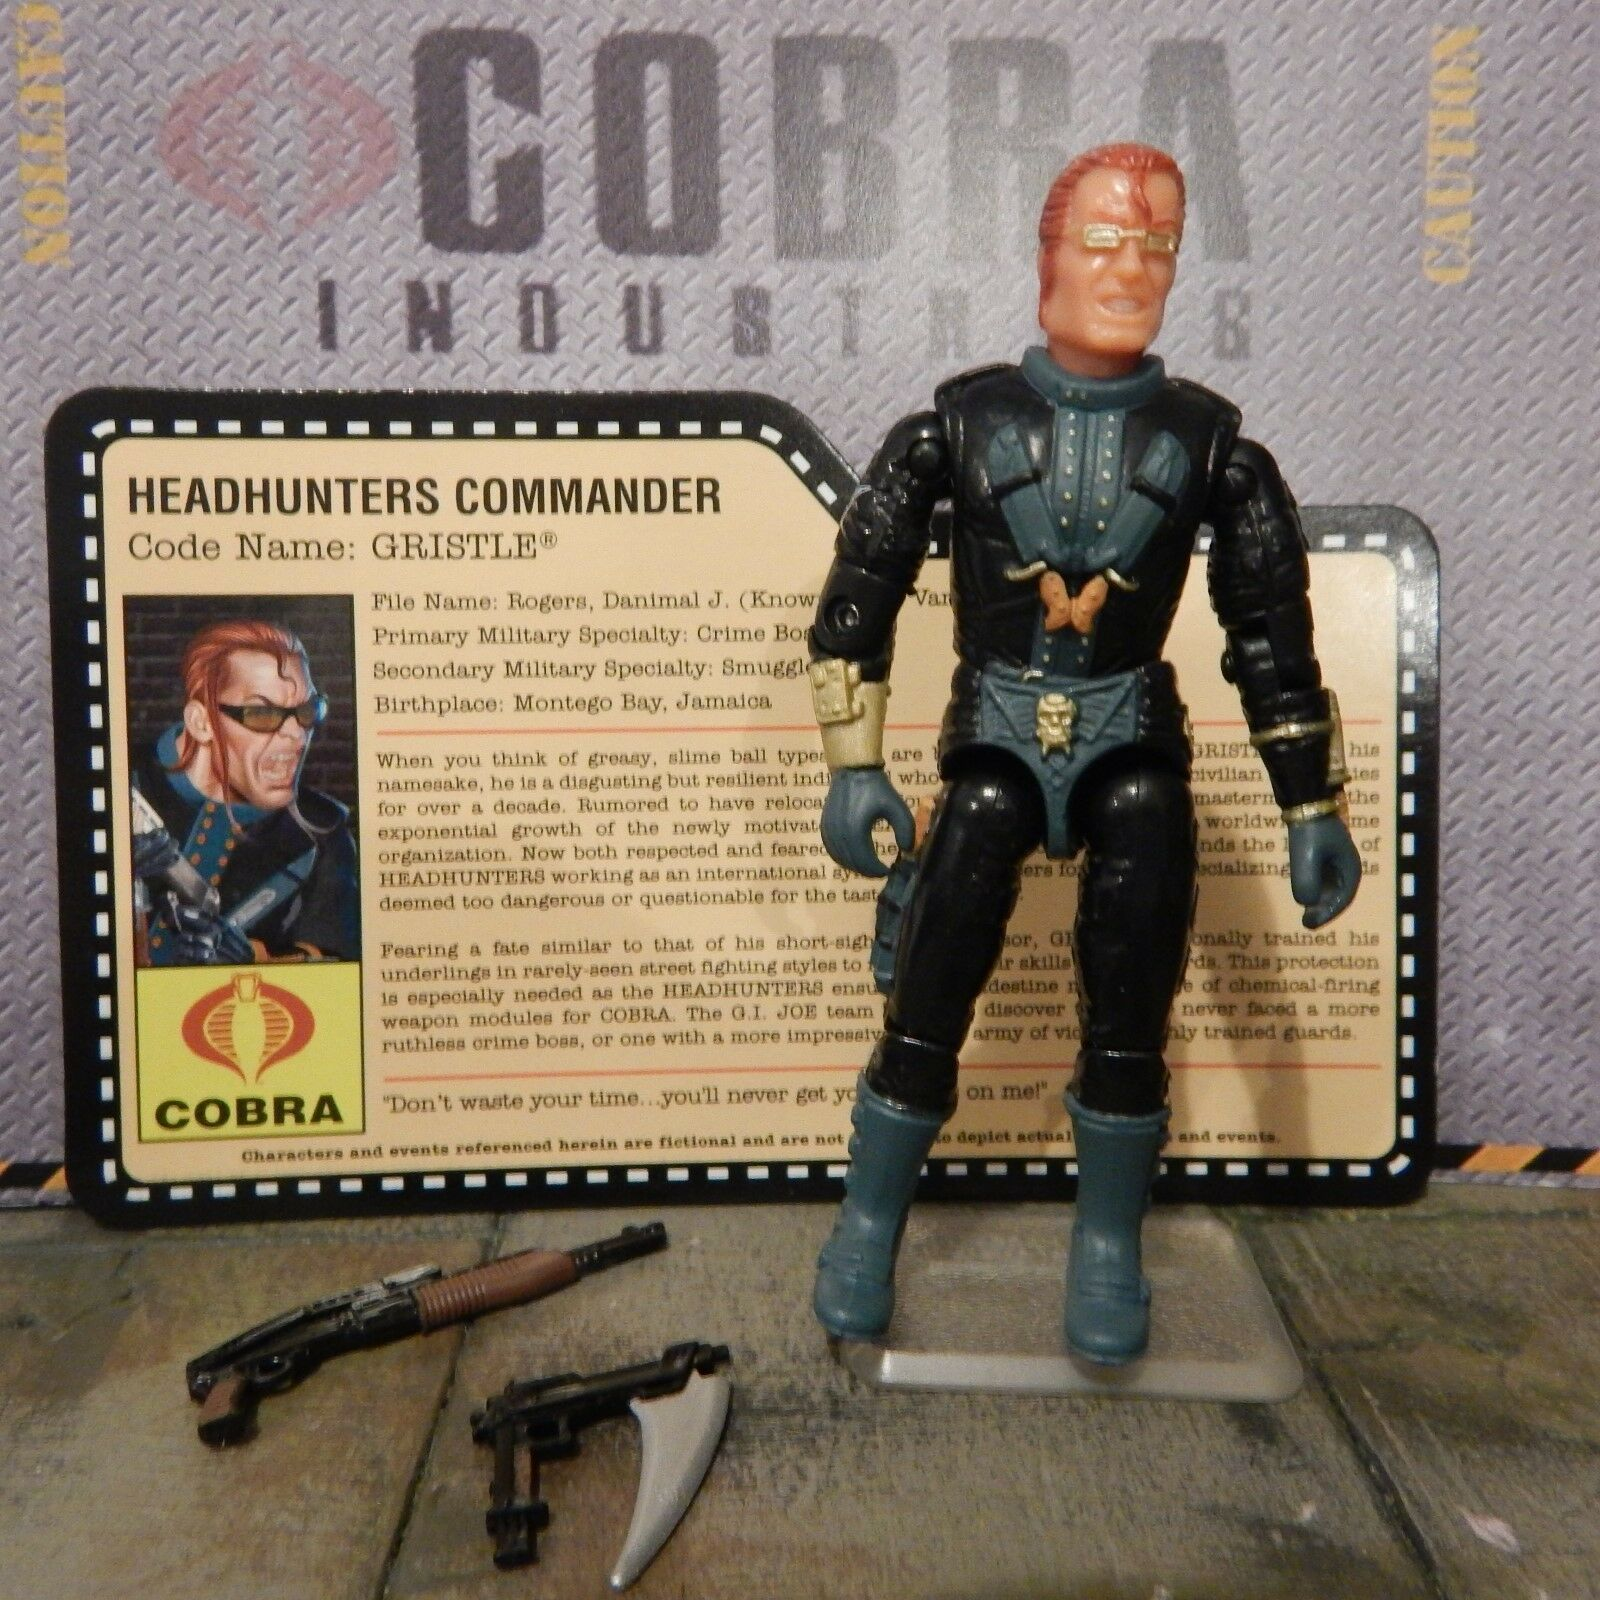 GI JOE  2008 greyTLE HEADHUNTER COMMANDER  100% & file card  CON JOECON